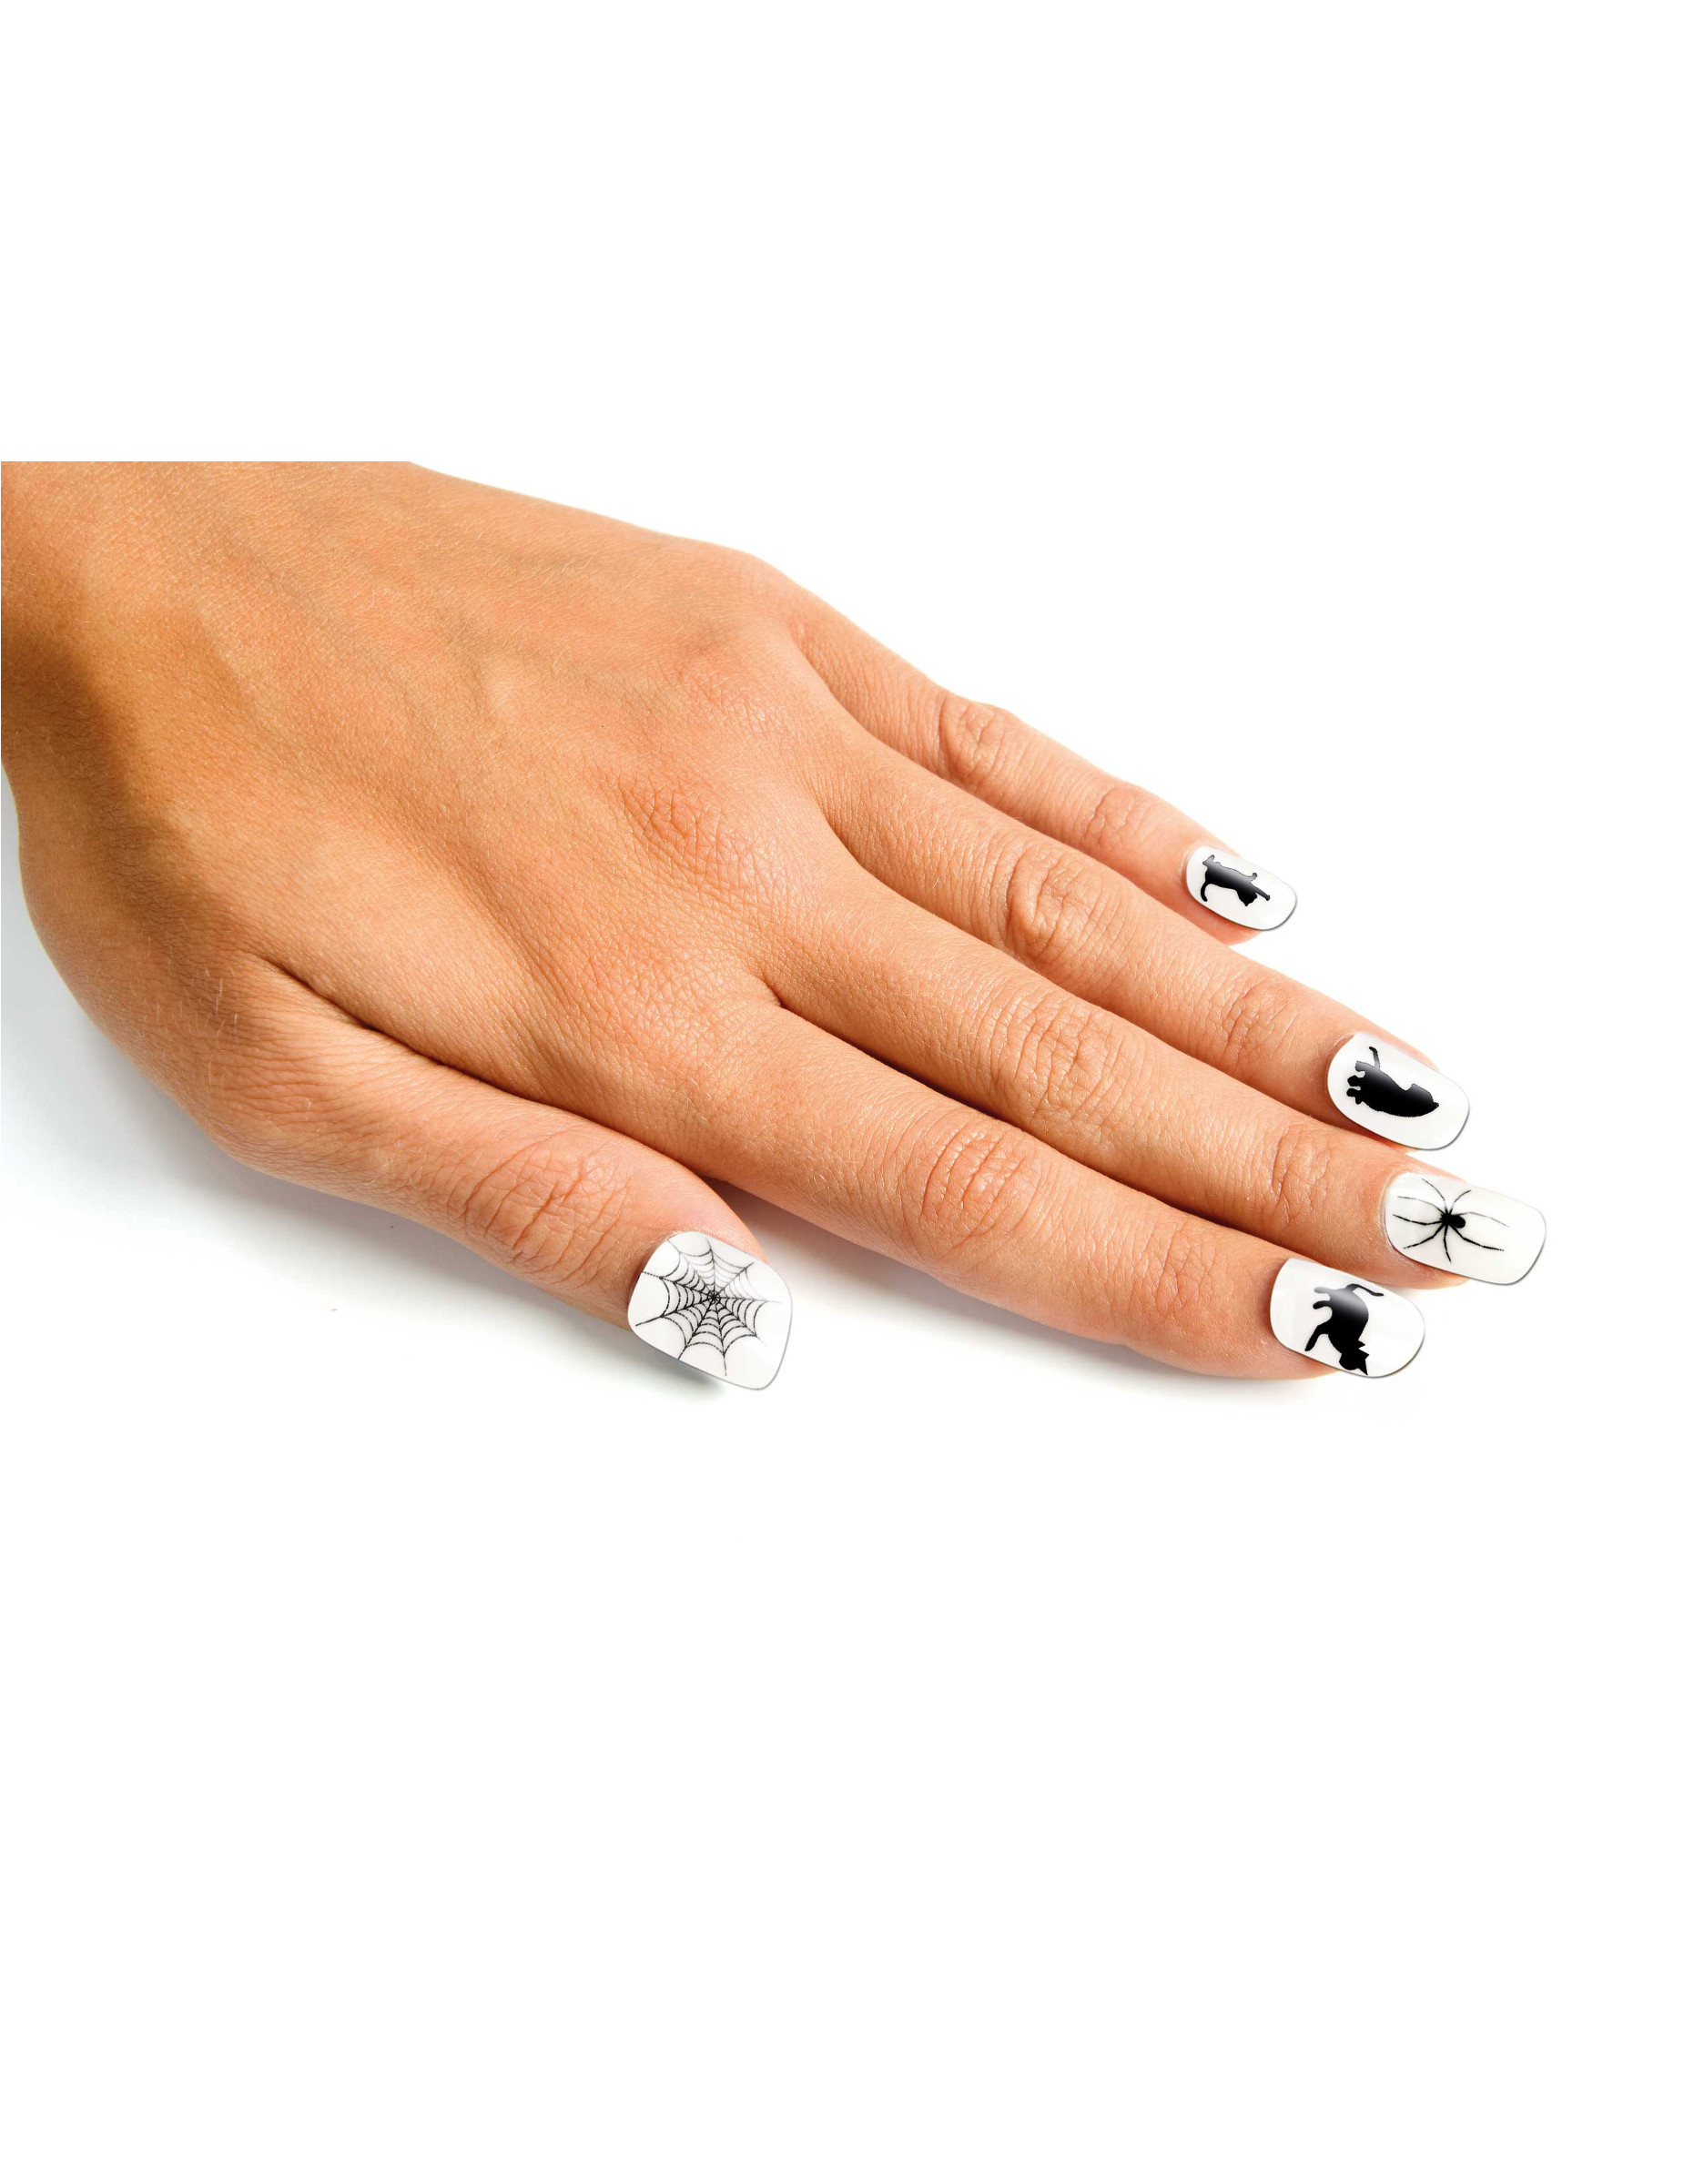 Faux Ongles Faux Ongles Blancs Adulte Halloween